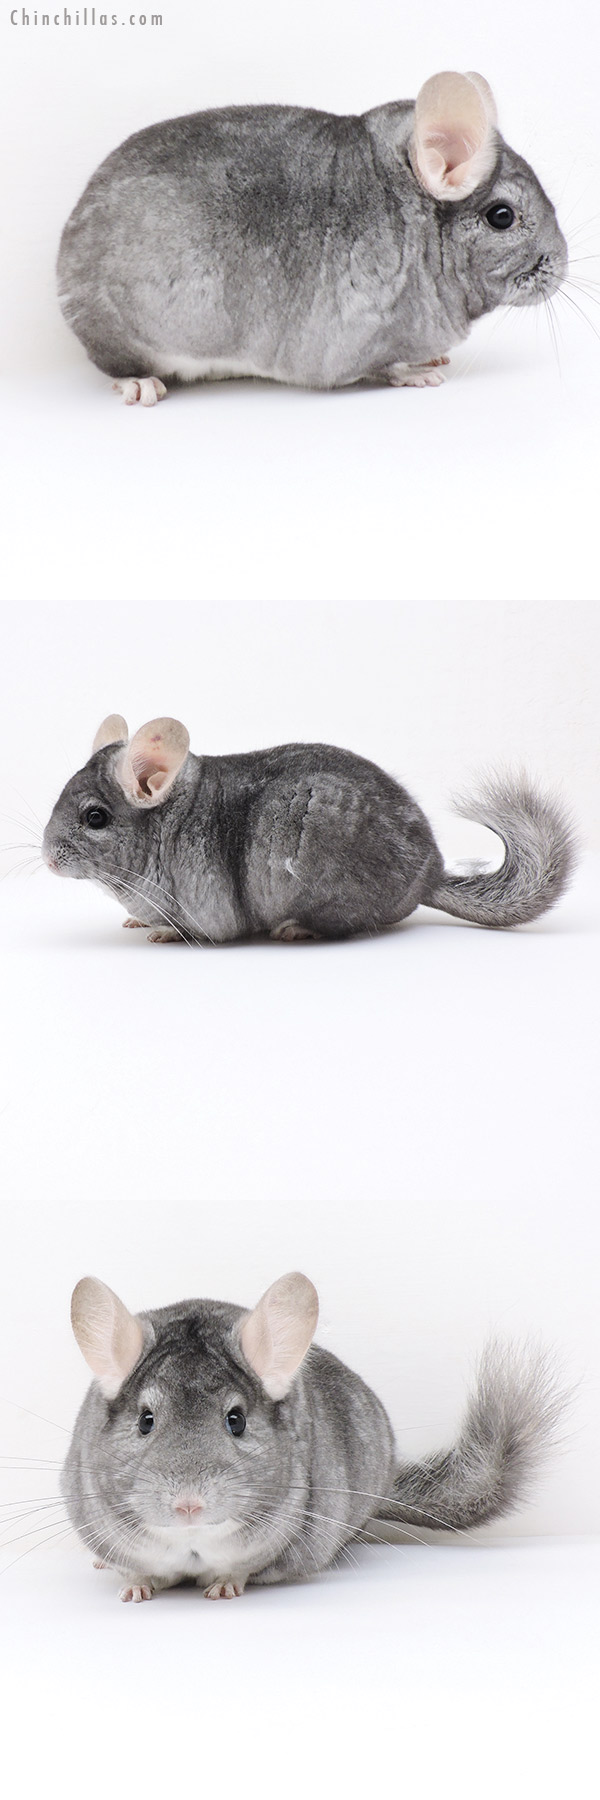 19170 Blocky Premium Production Quality Sapphire ( Violet Carrier ) Female Chinchilla